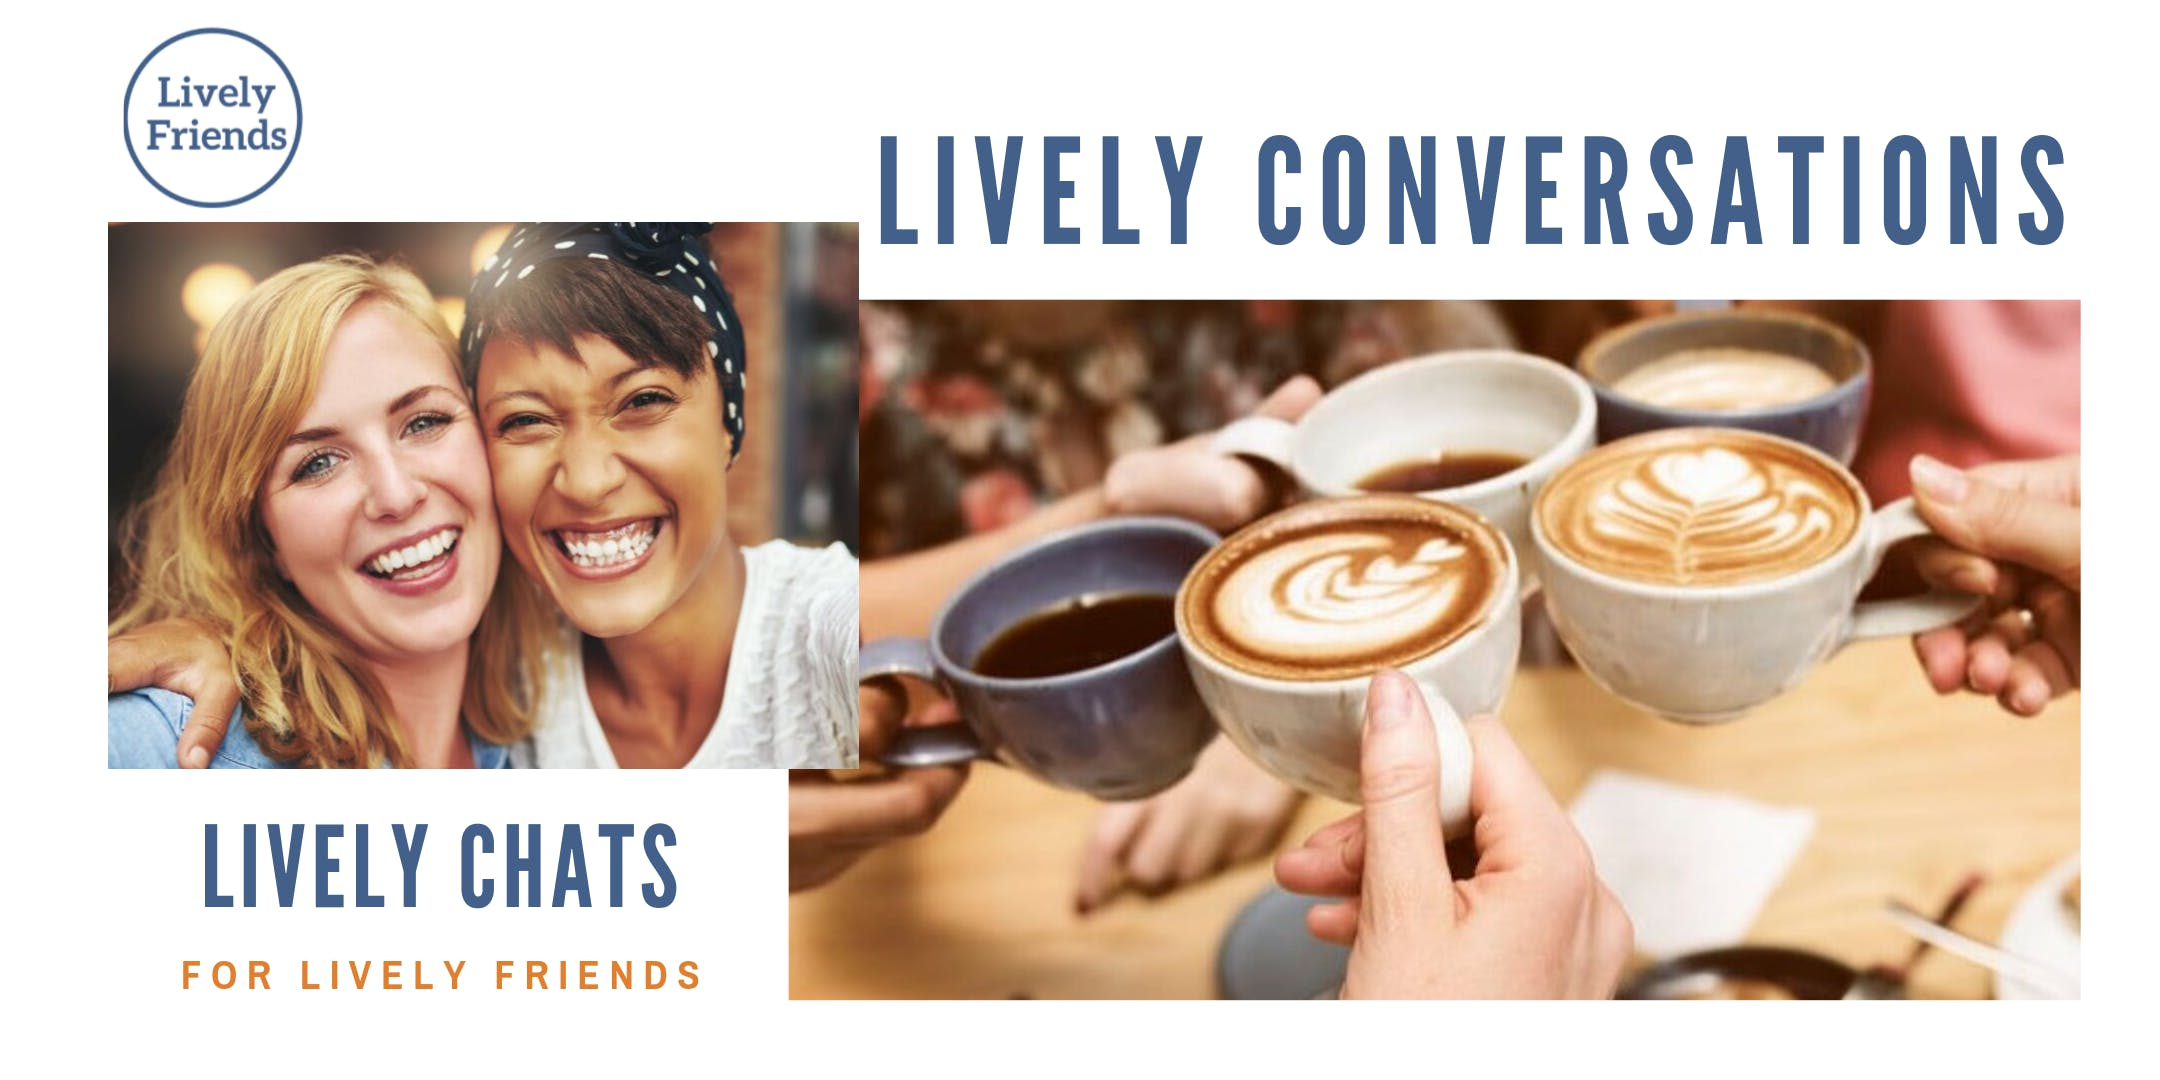 Lively Conversations - FALL RIVER in Oct 2019